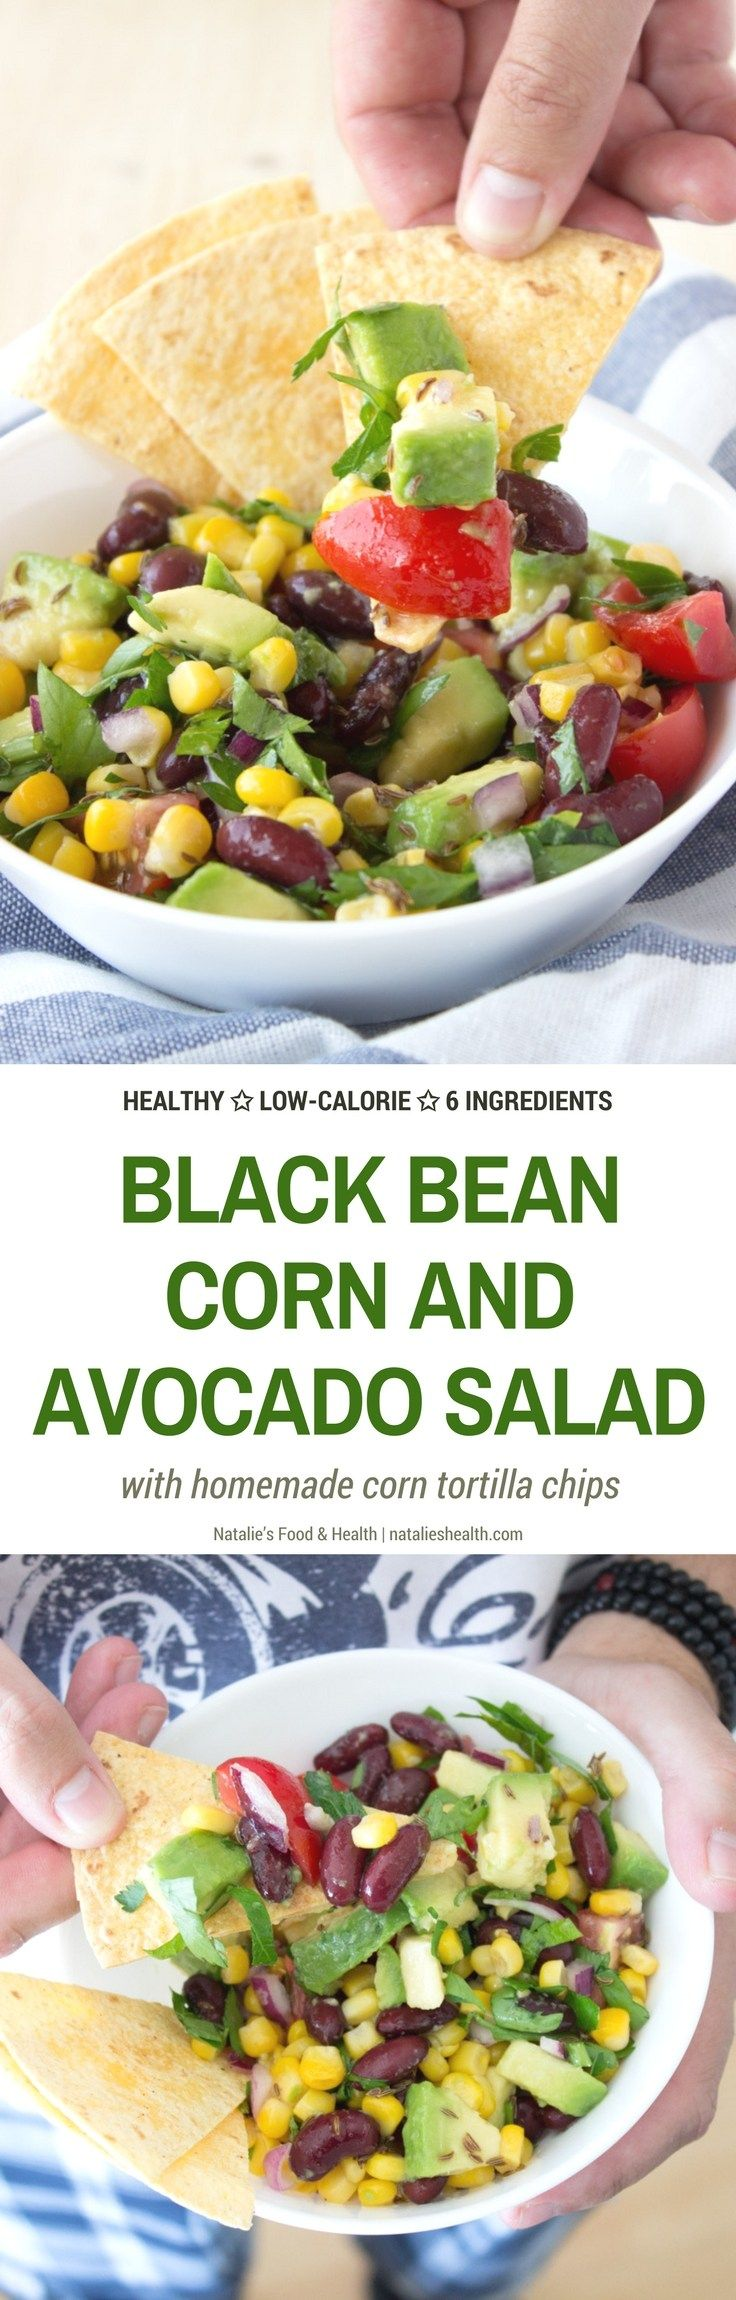 HEALTHY Black Bean Corn and Avocado Salad with homemade tortilla chips. Refreshing and easy, perfect spring or summer salad